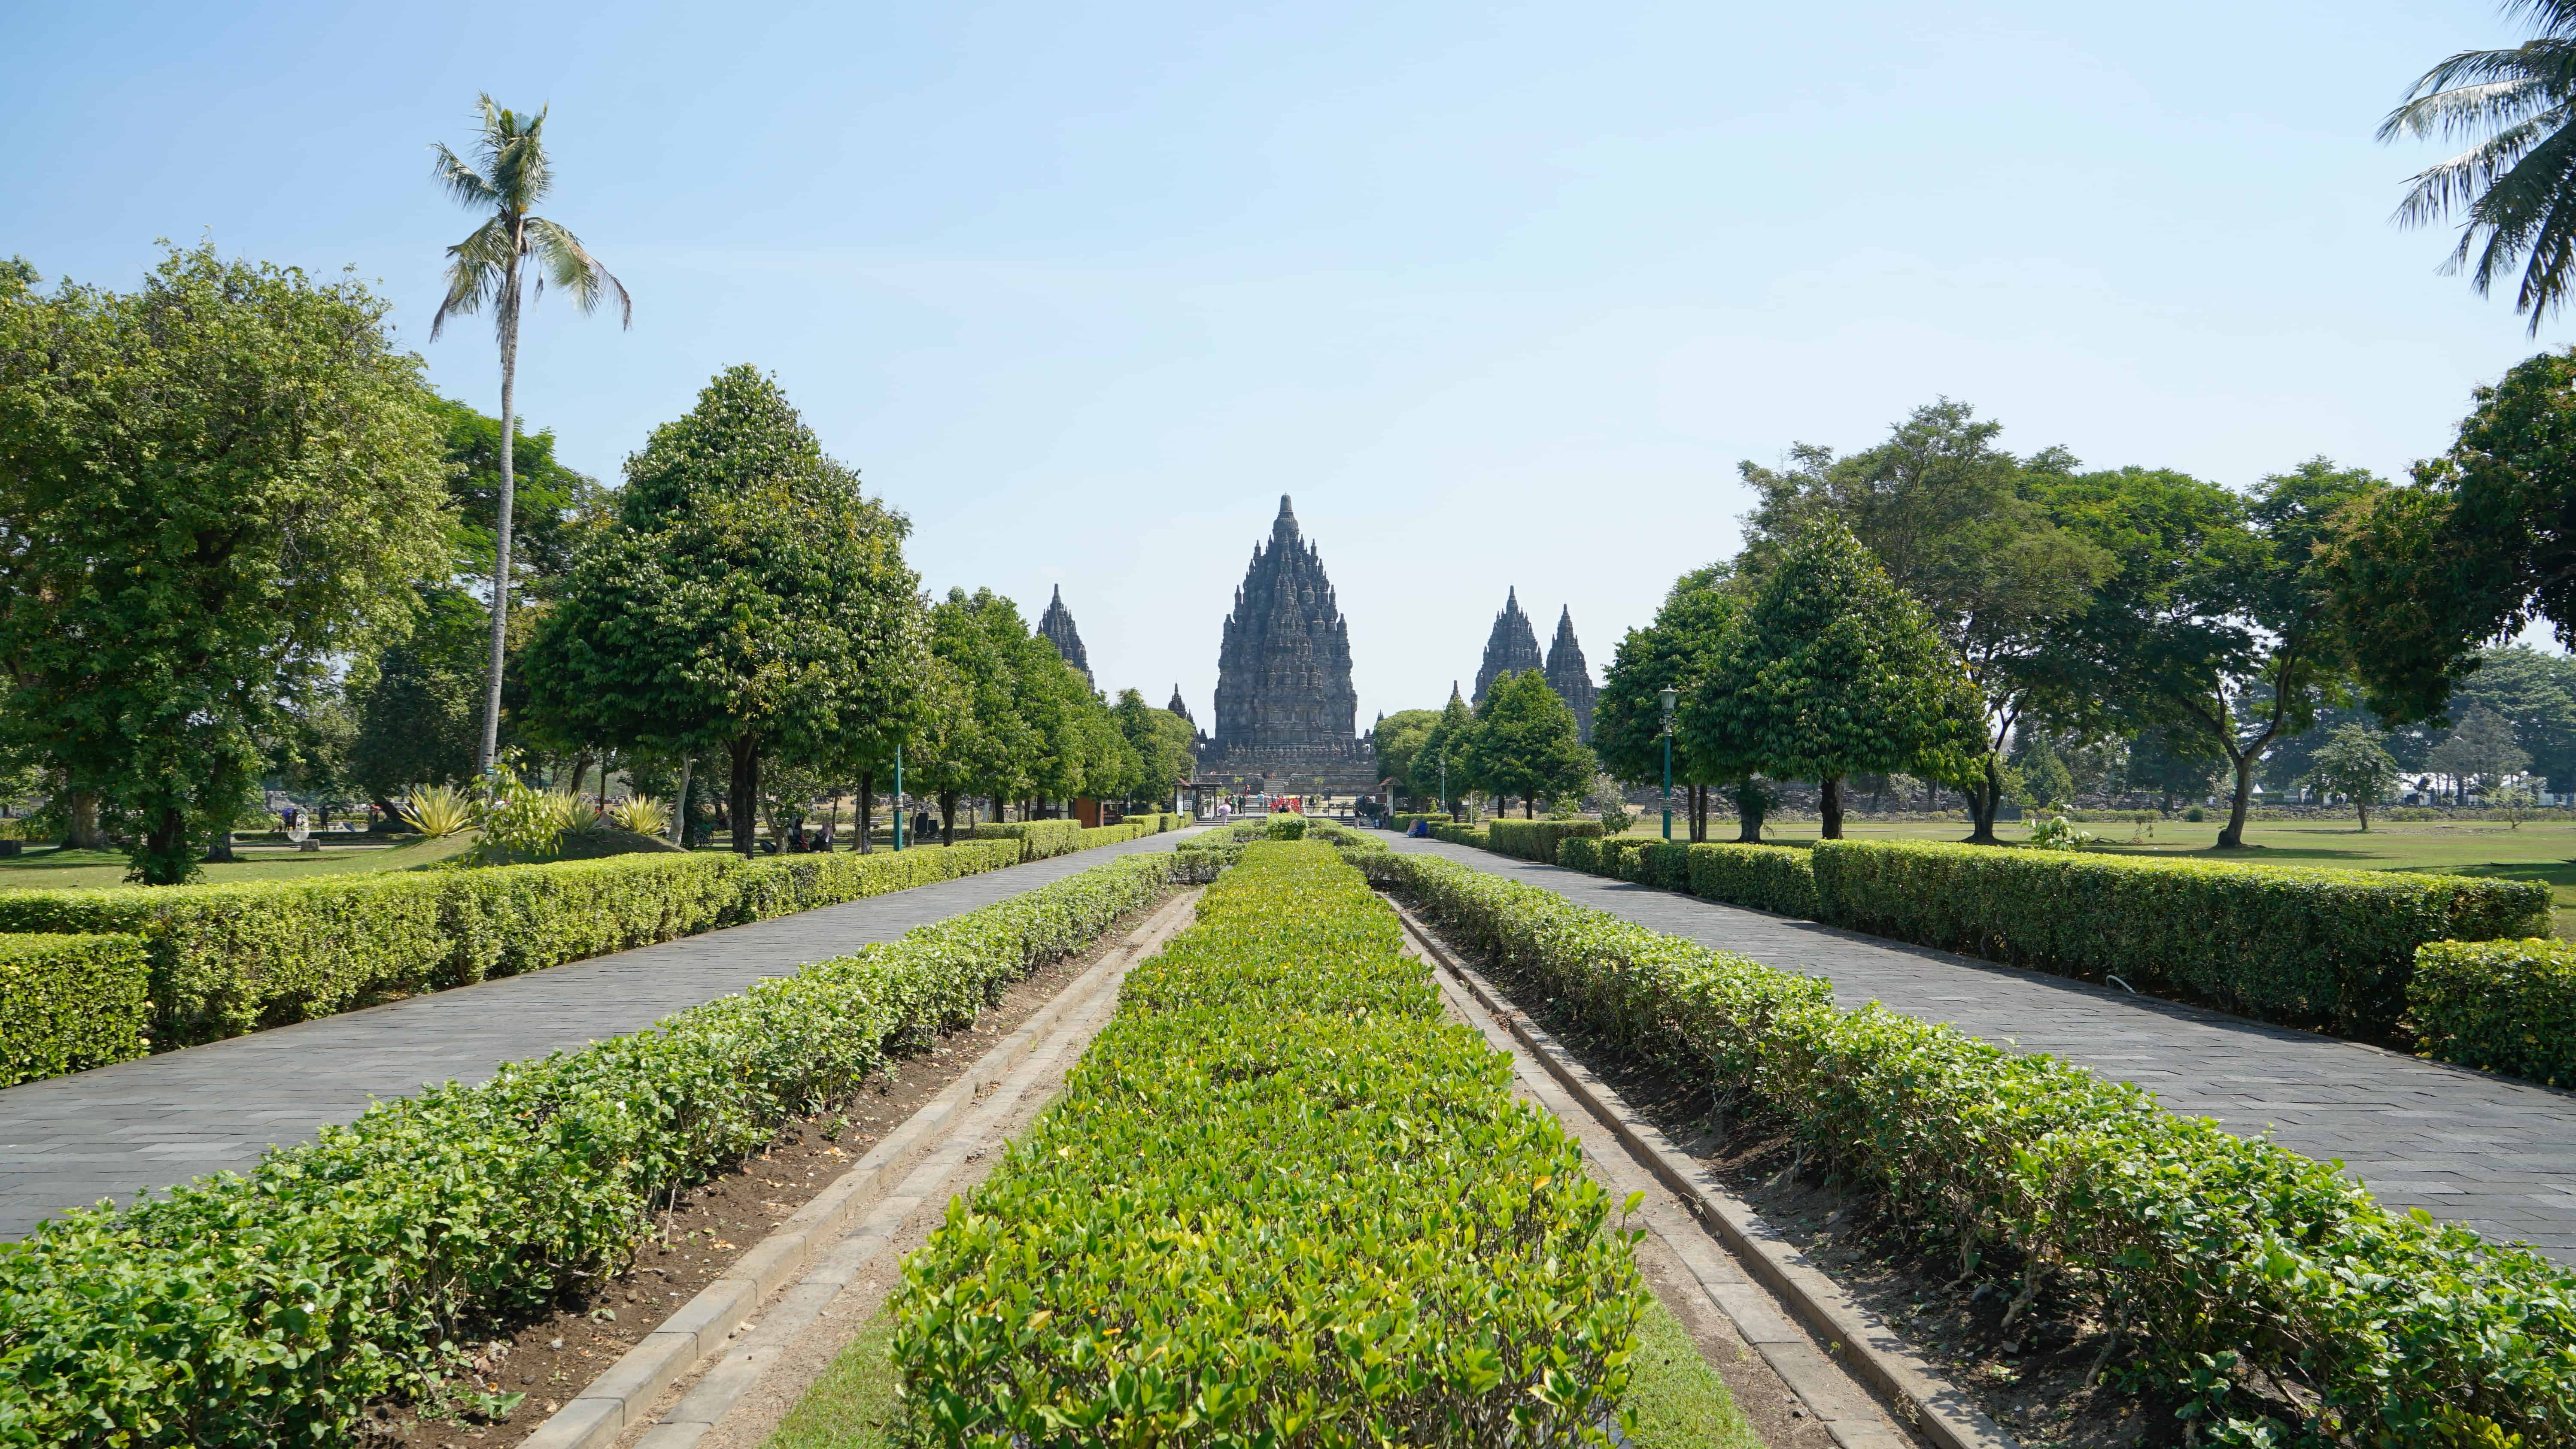 Inside the Best Temples in Indonesia: Homage to Elder Civilizations